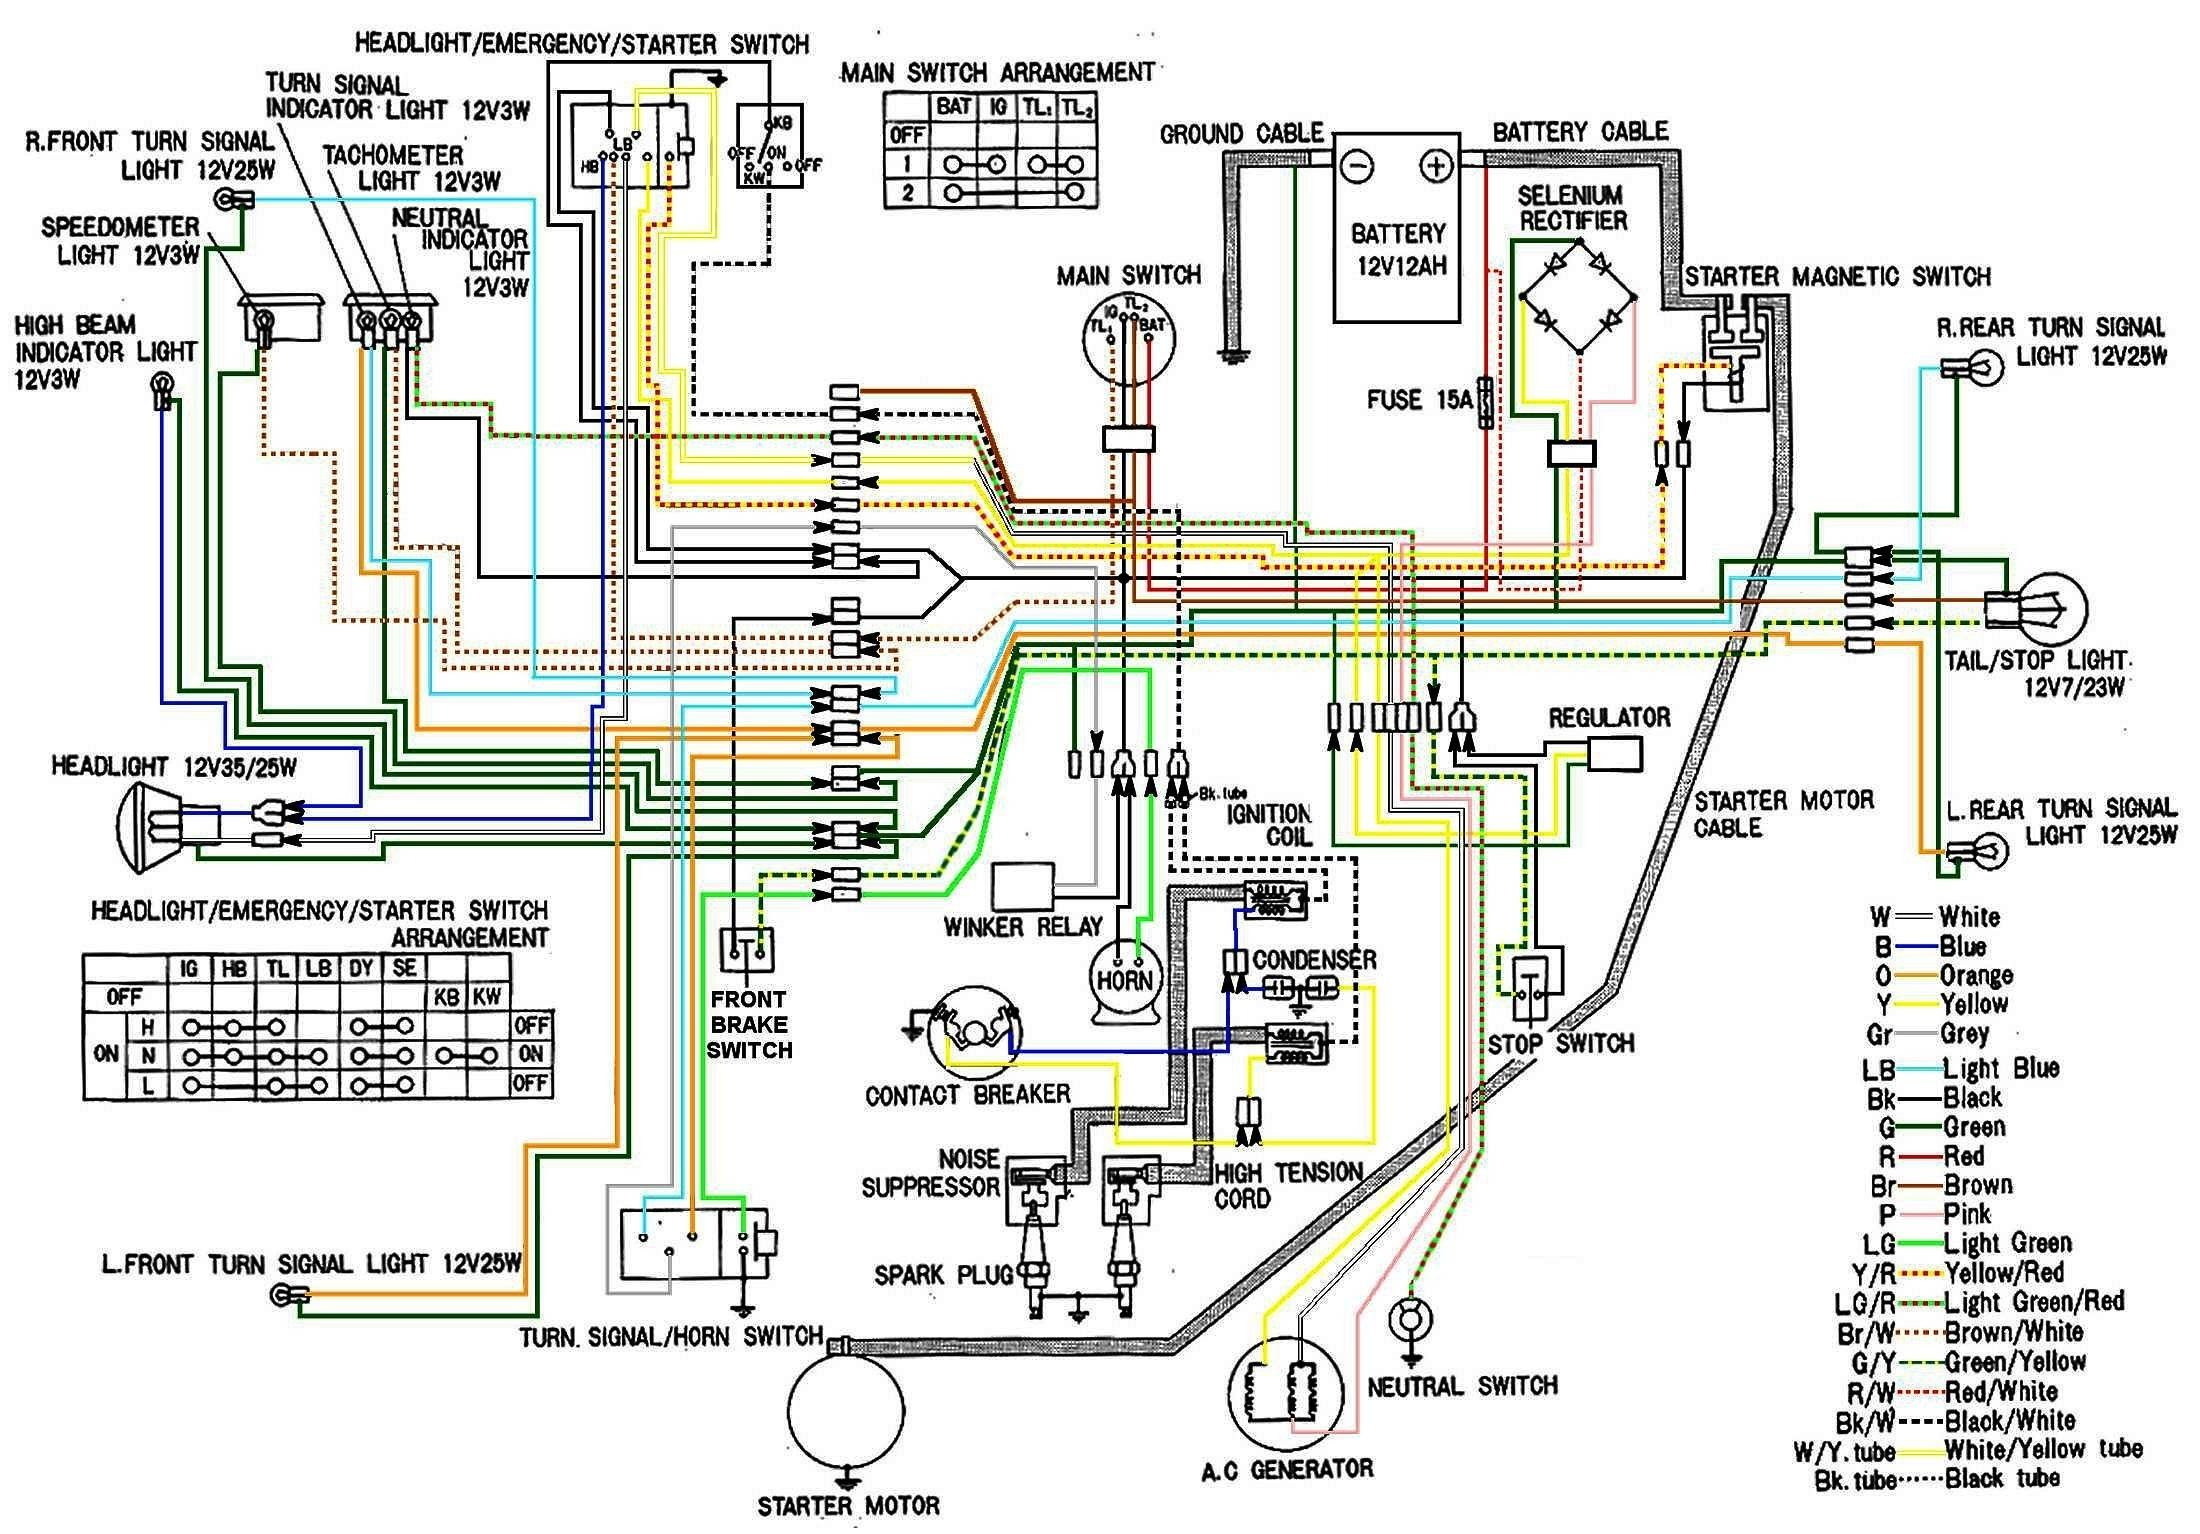 unique wiring diagram for home telephone diagram diagramsample diagramtemplate wiringdiagram diagramchart worksheet worksheettemplate [ 2200 x 1534 Pixel ]